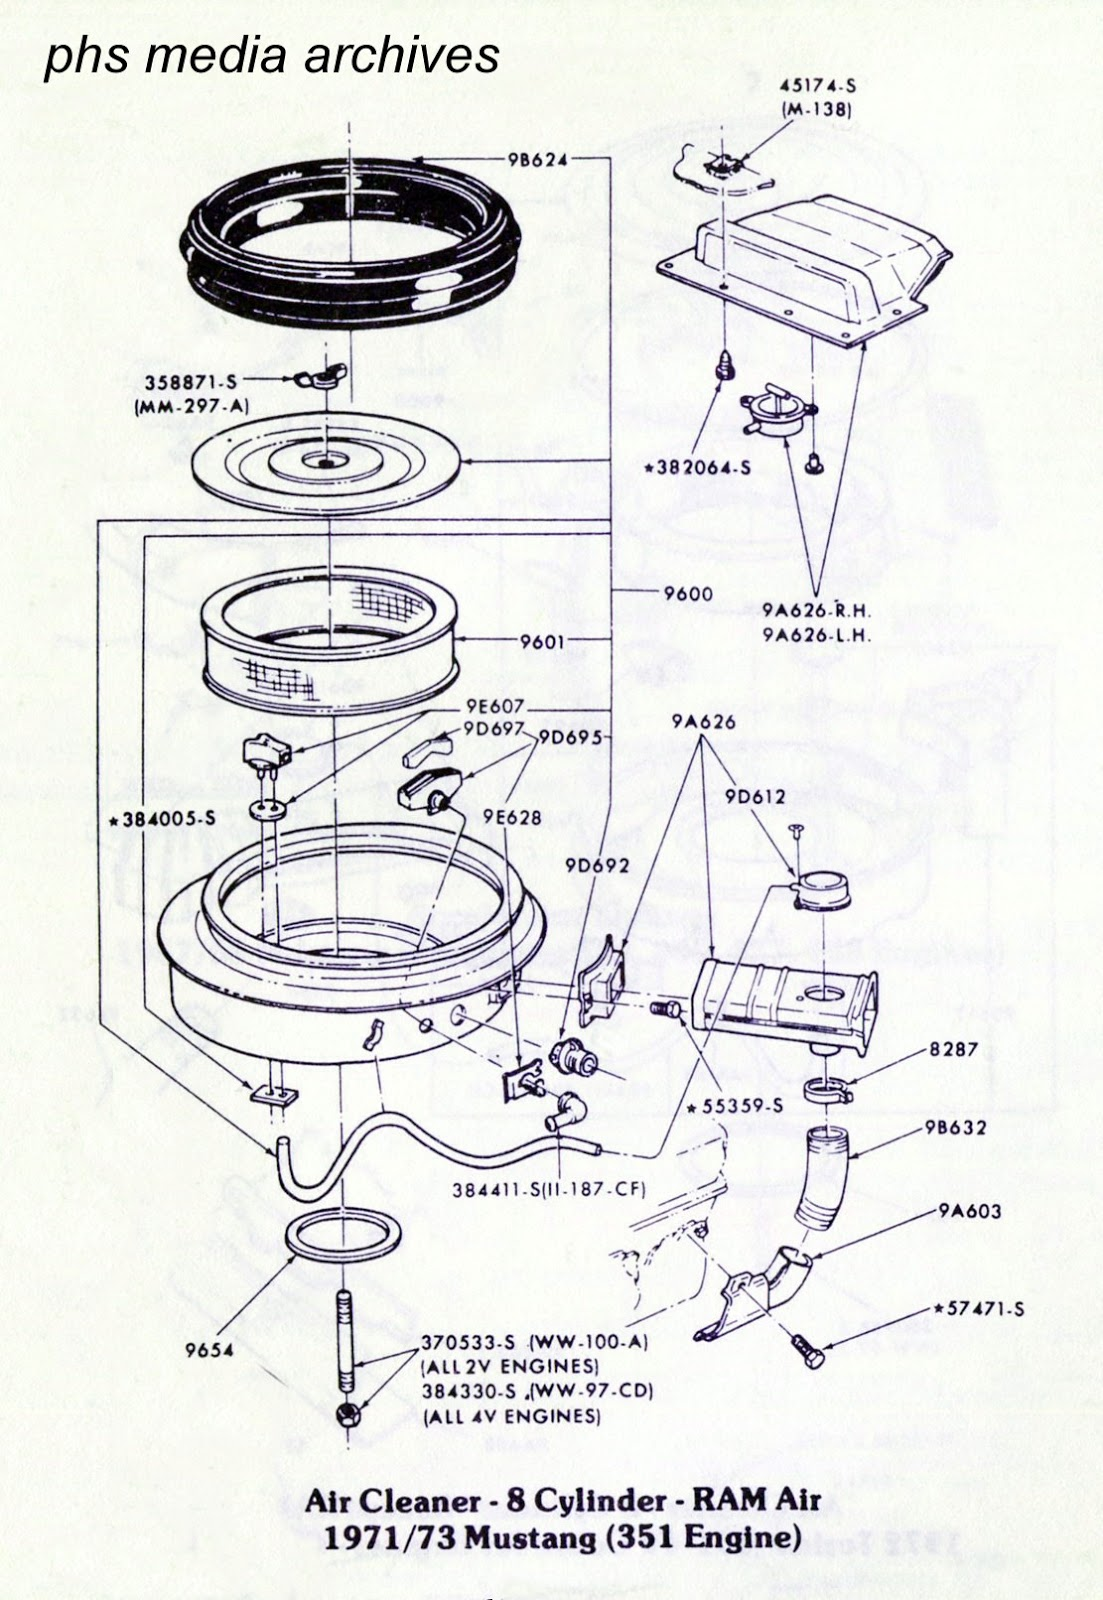 Tech Series Ford Mustang Air Cleaner Id Guide 1971 1973 2012 Engine Diagram The Ram System For 351 4v Is Shown Above Note That In Drawing There Are Specific Part Numbers Certain Pieces Where